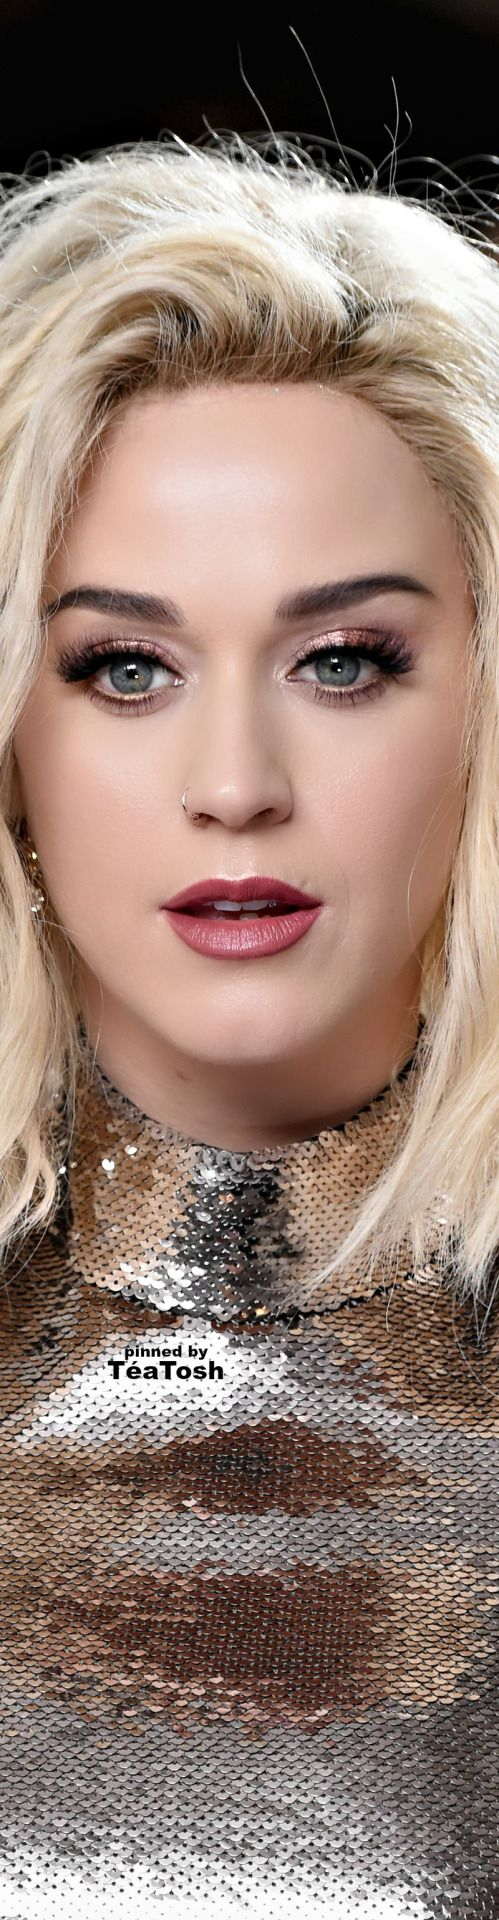 Piercing names in mouth   best Katy perry images on Pinterest  Queens Beautiful people and